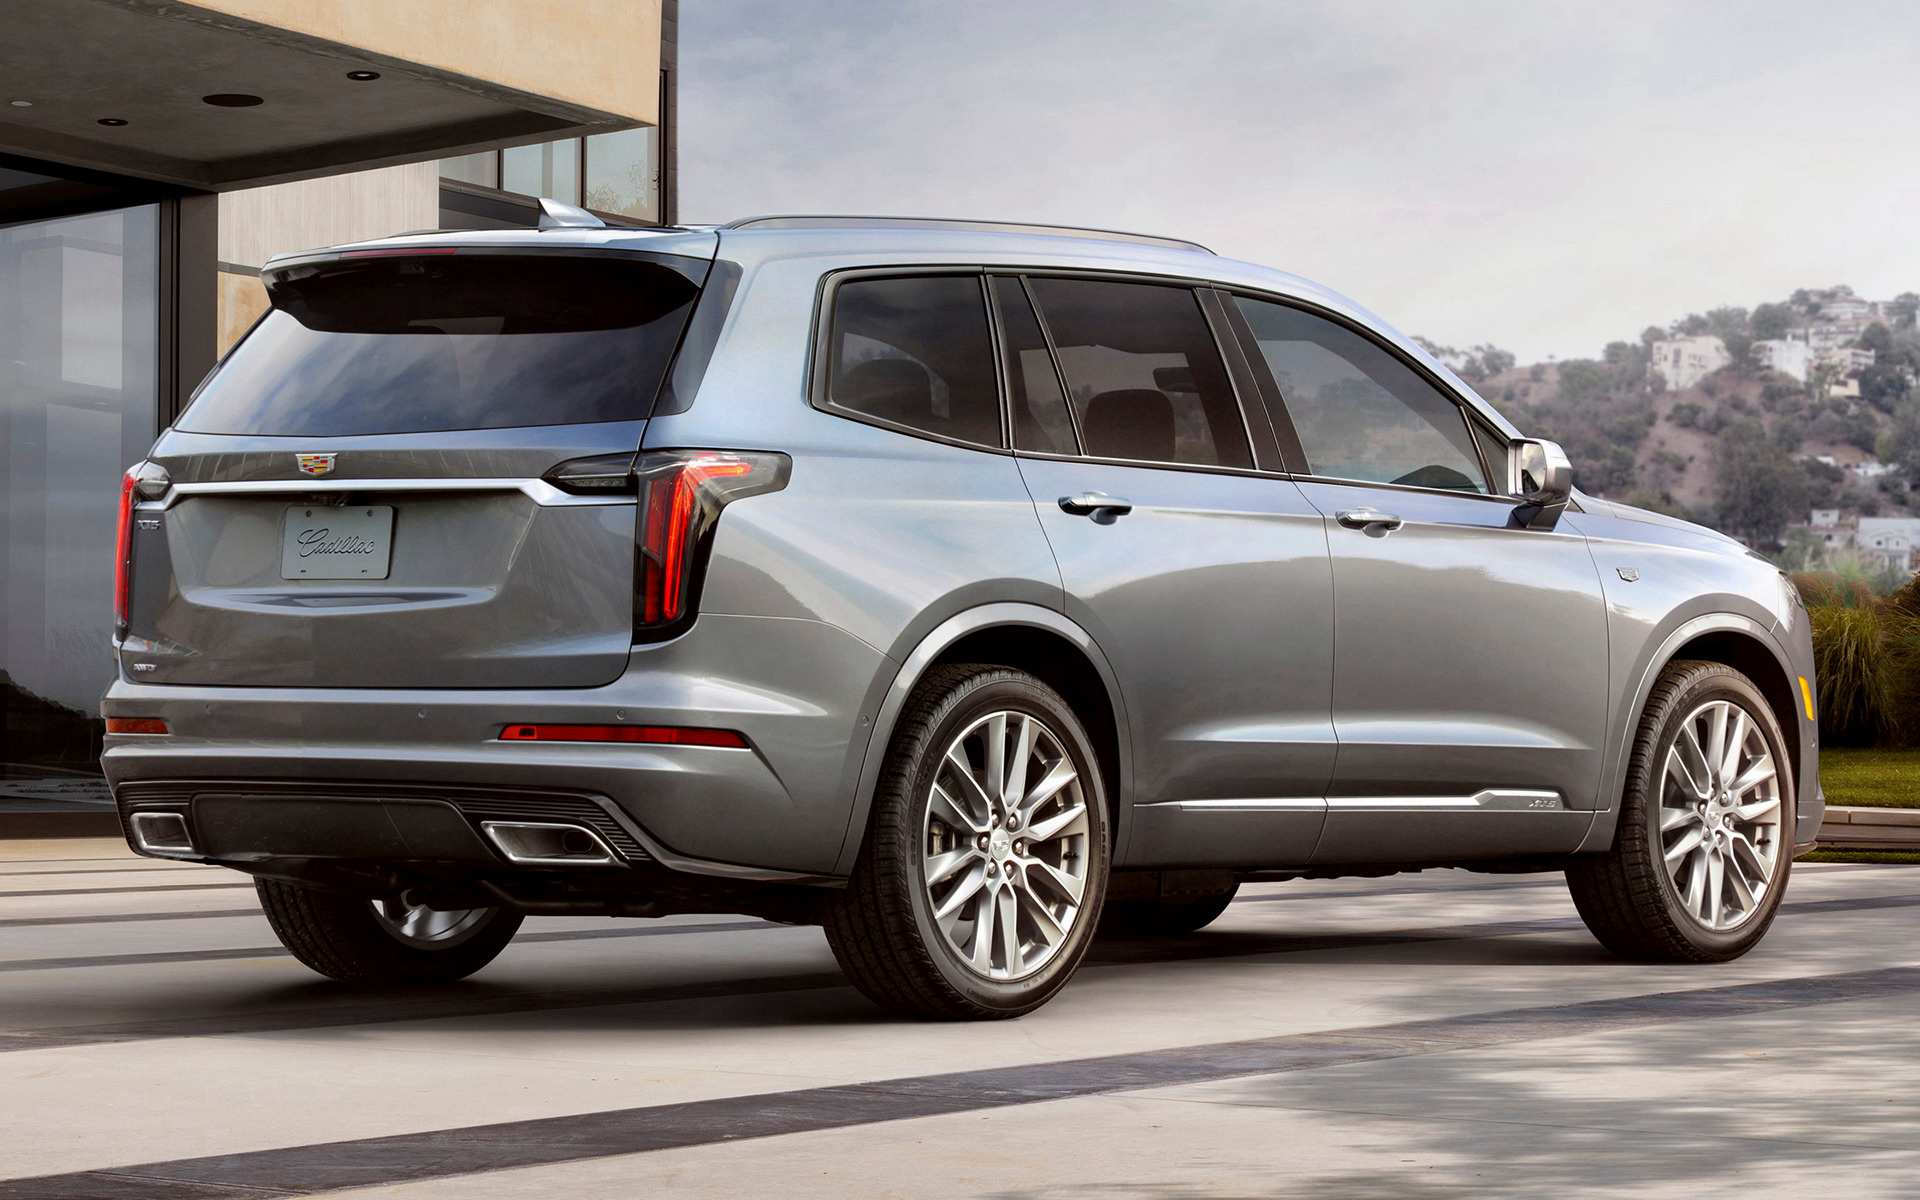 54 All New Pictures Of 2020 Cadillac Xt6 Price And Release Date